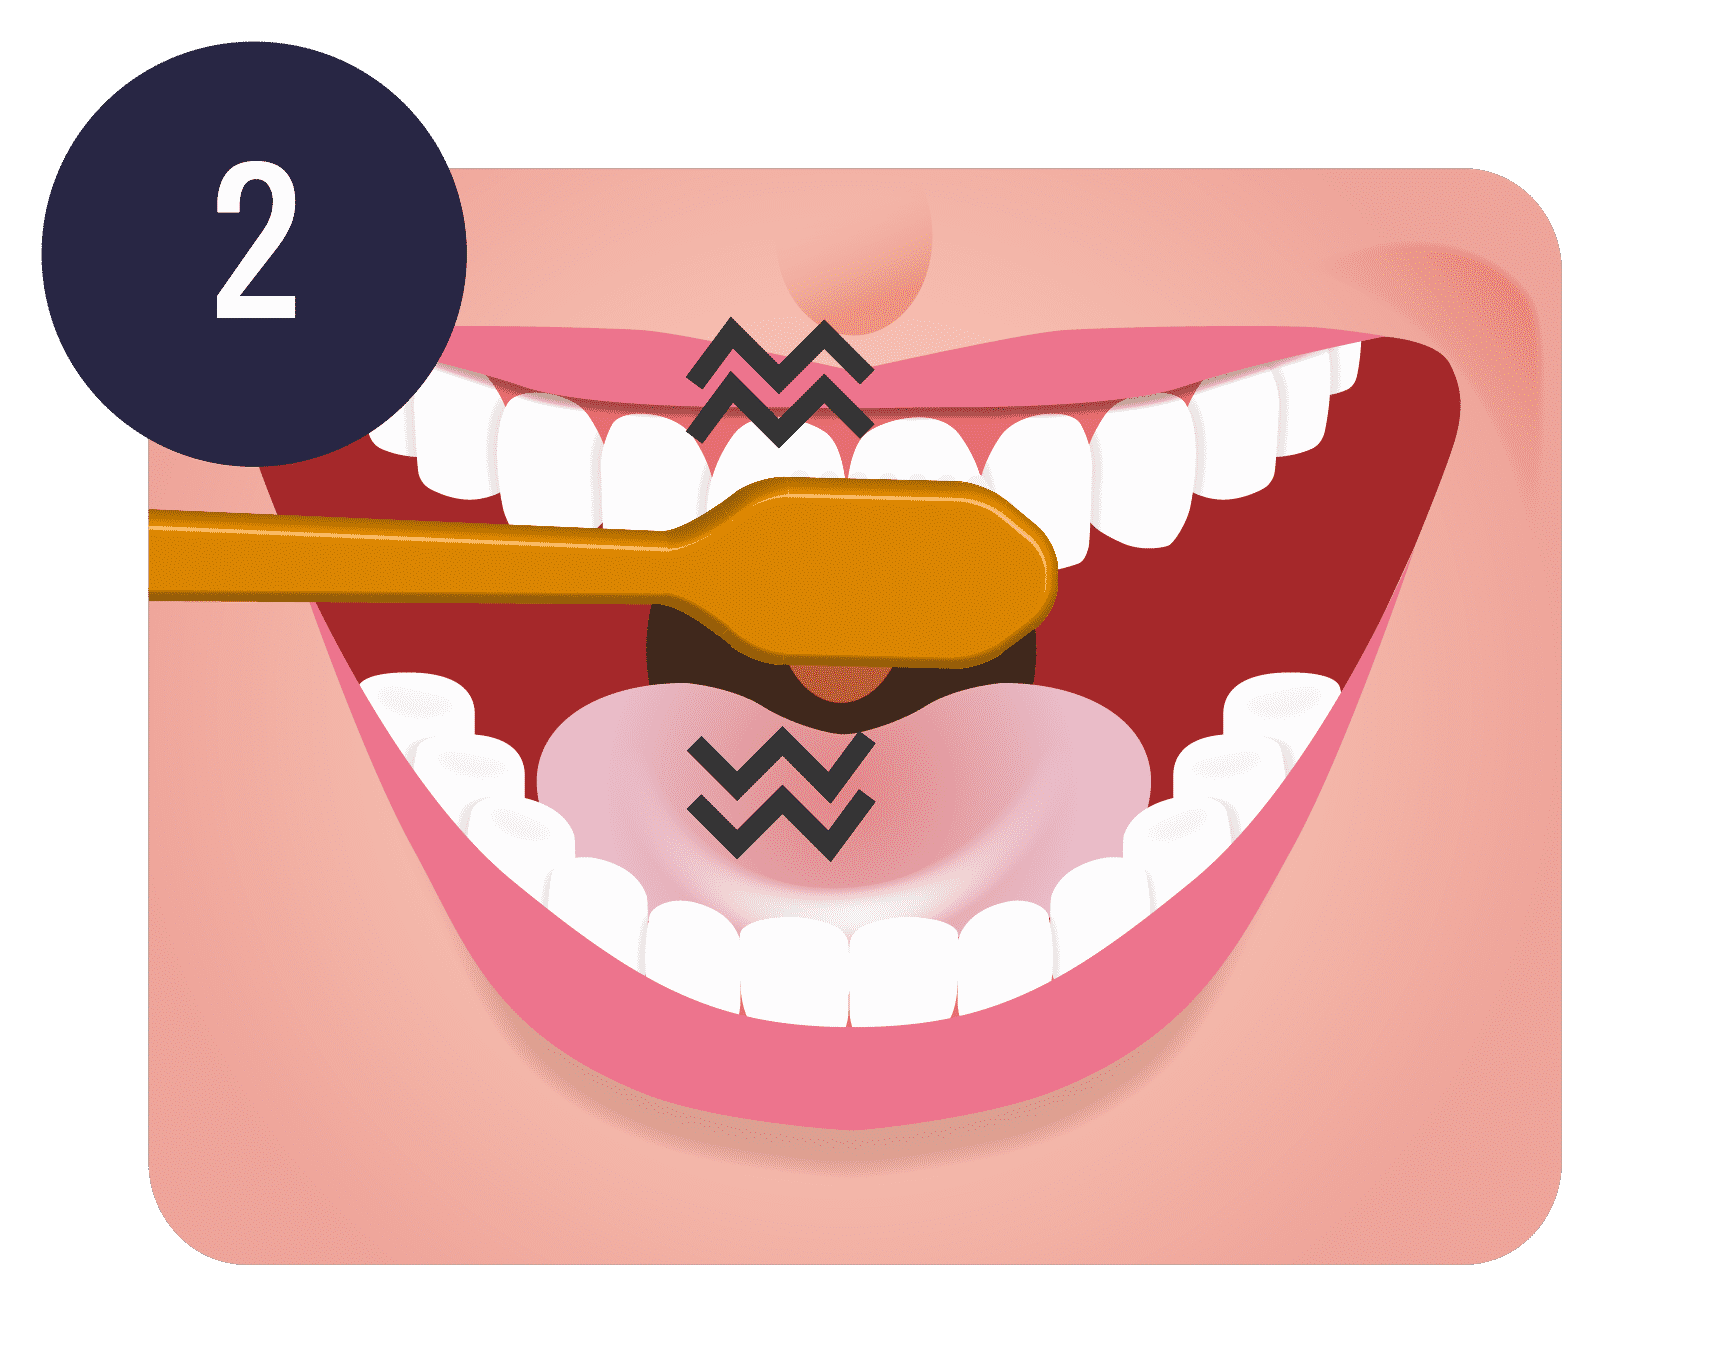 Tooth brushing teeth cleaning. Dentist clipart brushteeth